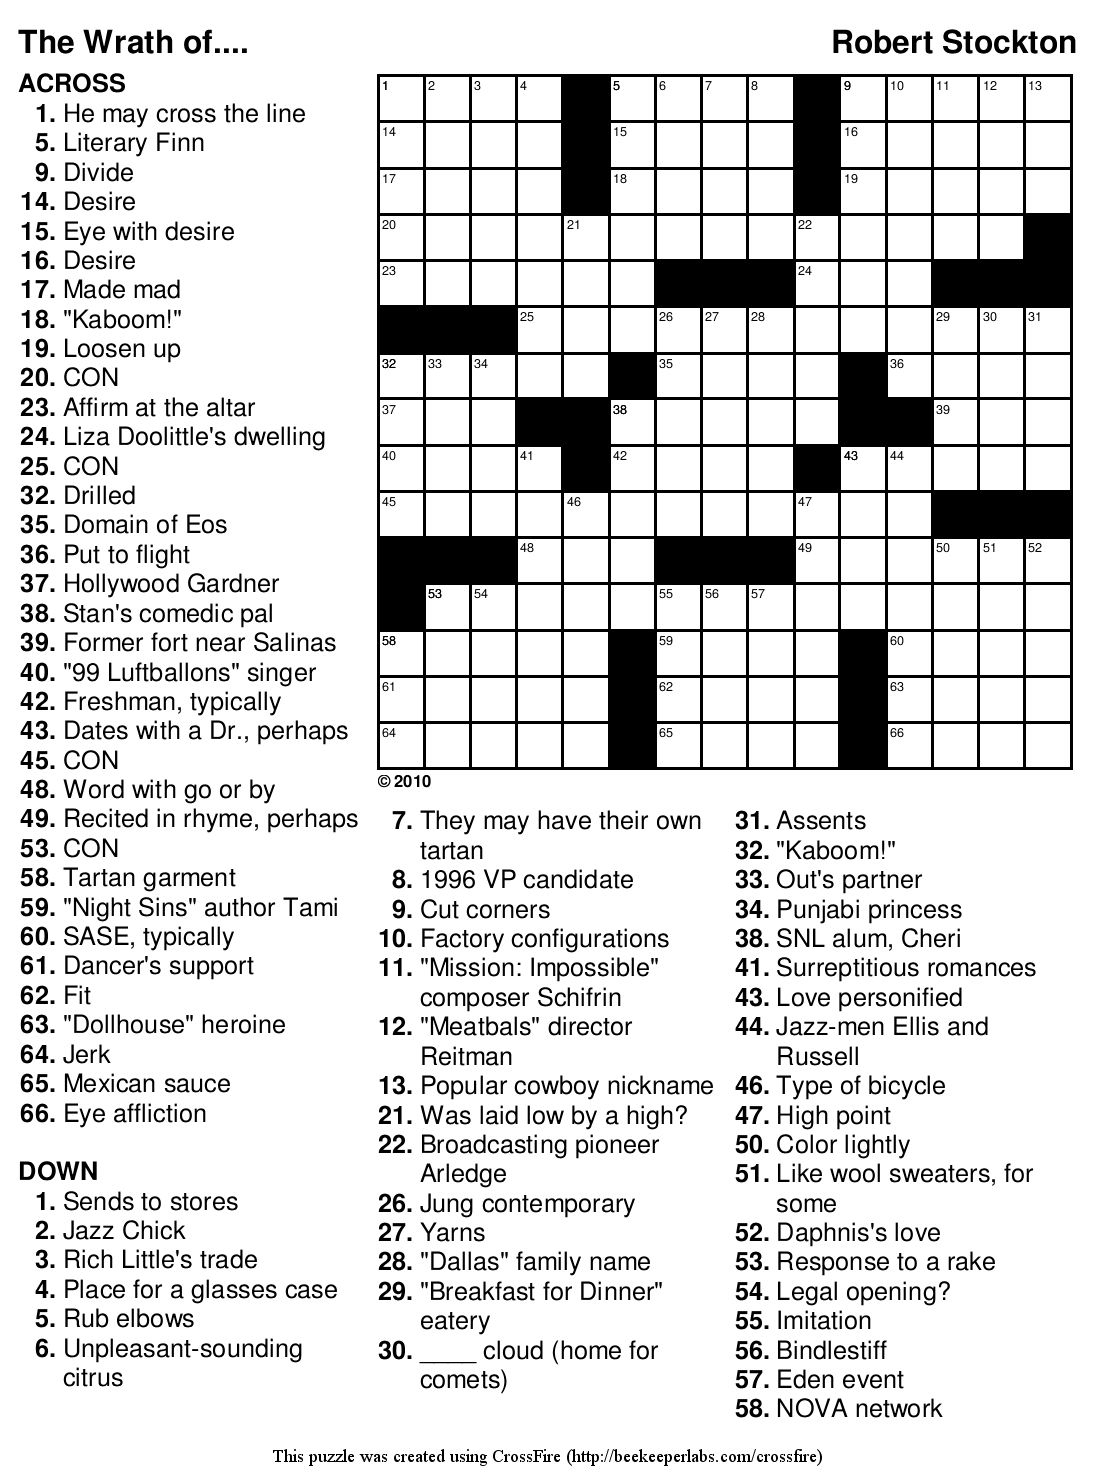 Marvelous Crossword Puzzles Easy Printable Free Org | Chas's Board - Printable Nyt Crossword Puzzles Free